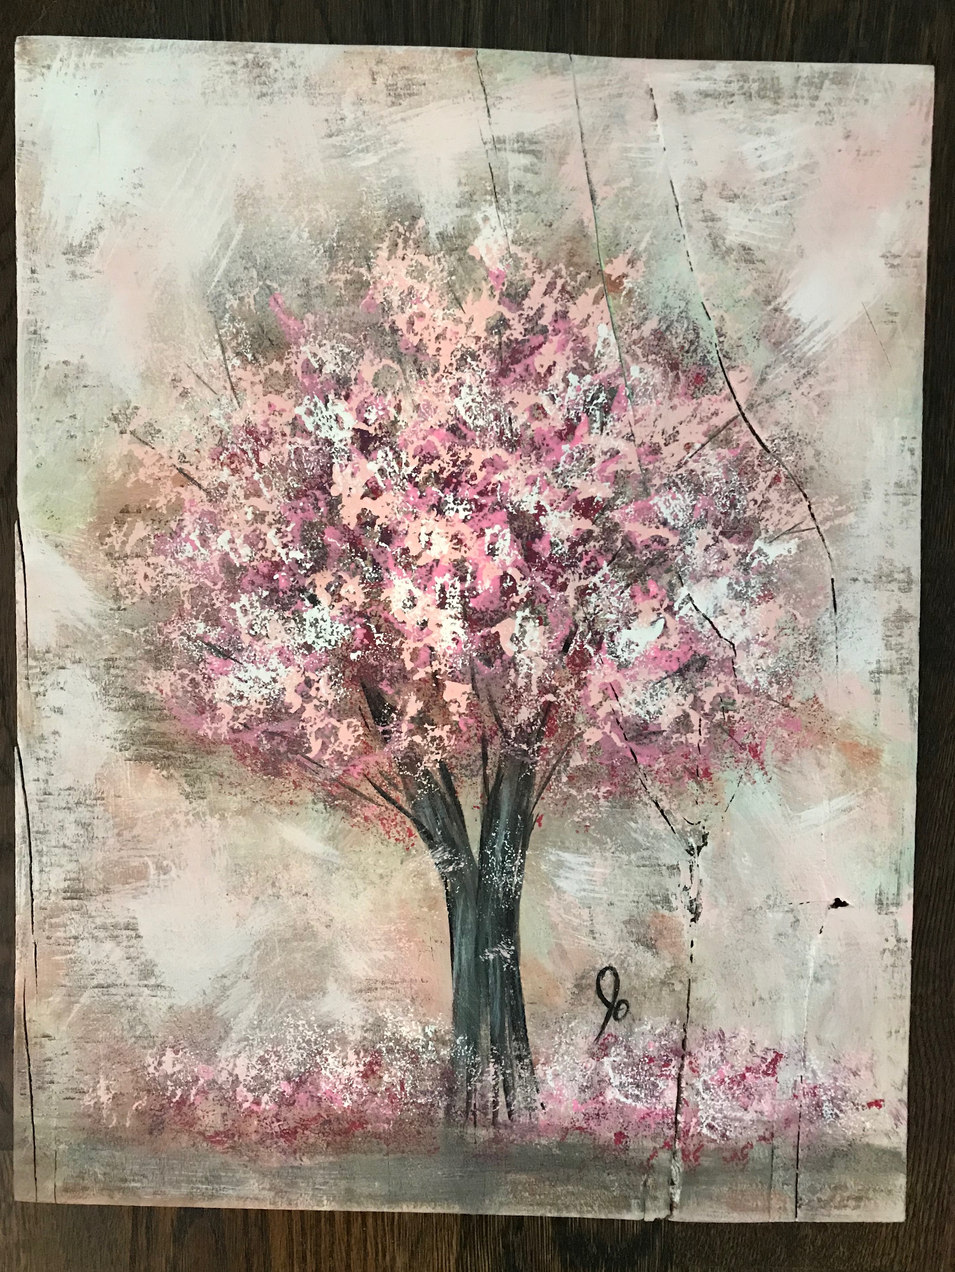 Blooming Cherry - $85